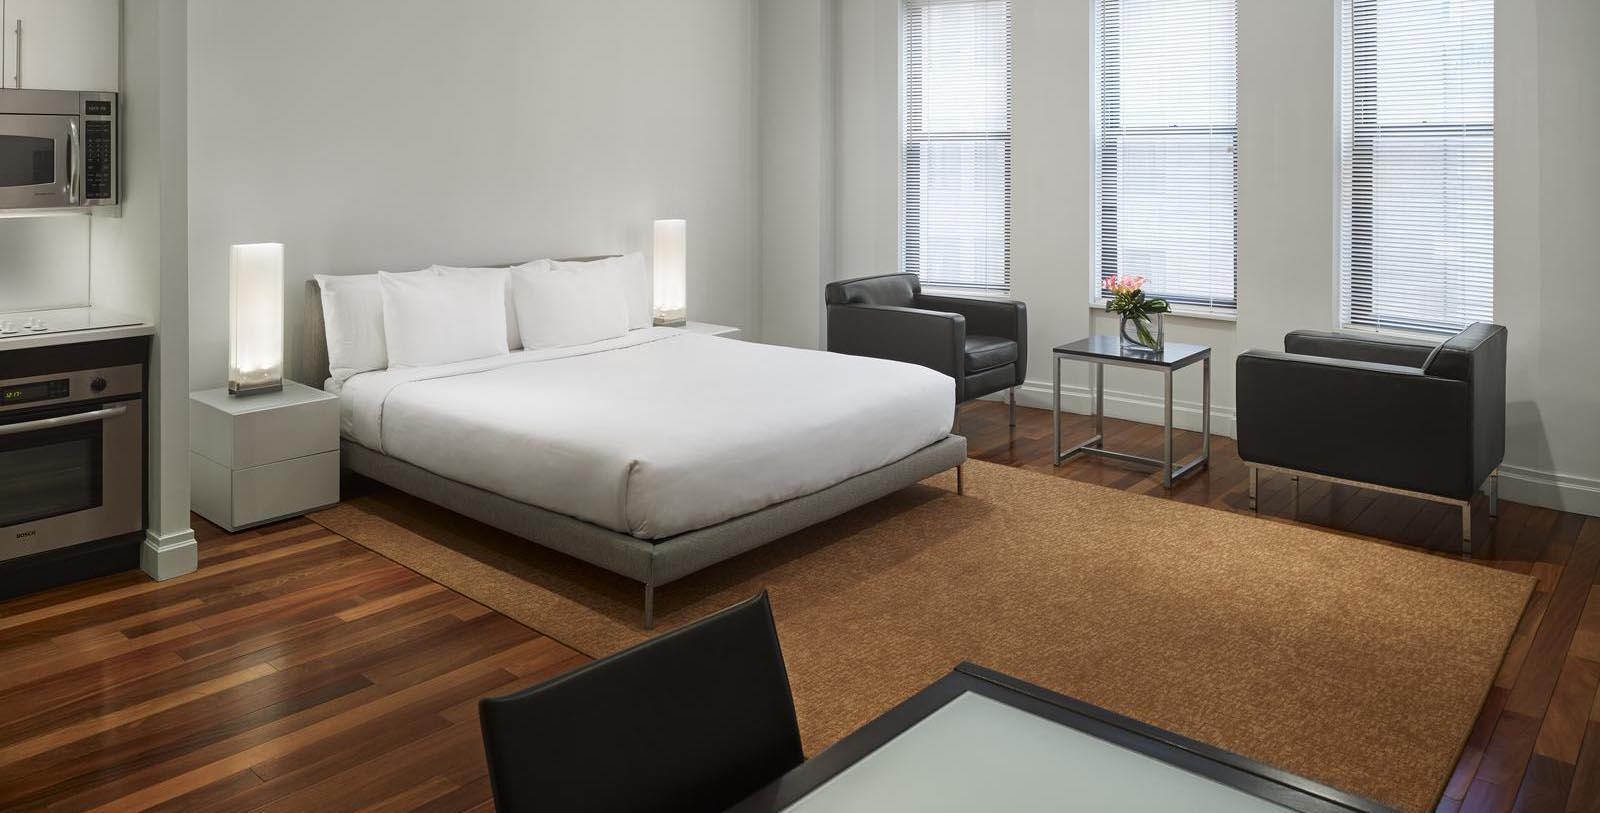 Image of Guestroom at AKA Times Square, 1893 Member of Historic Hotels of America, in New York, New York, Accommodations